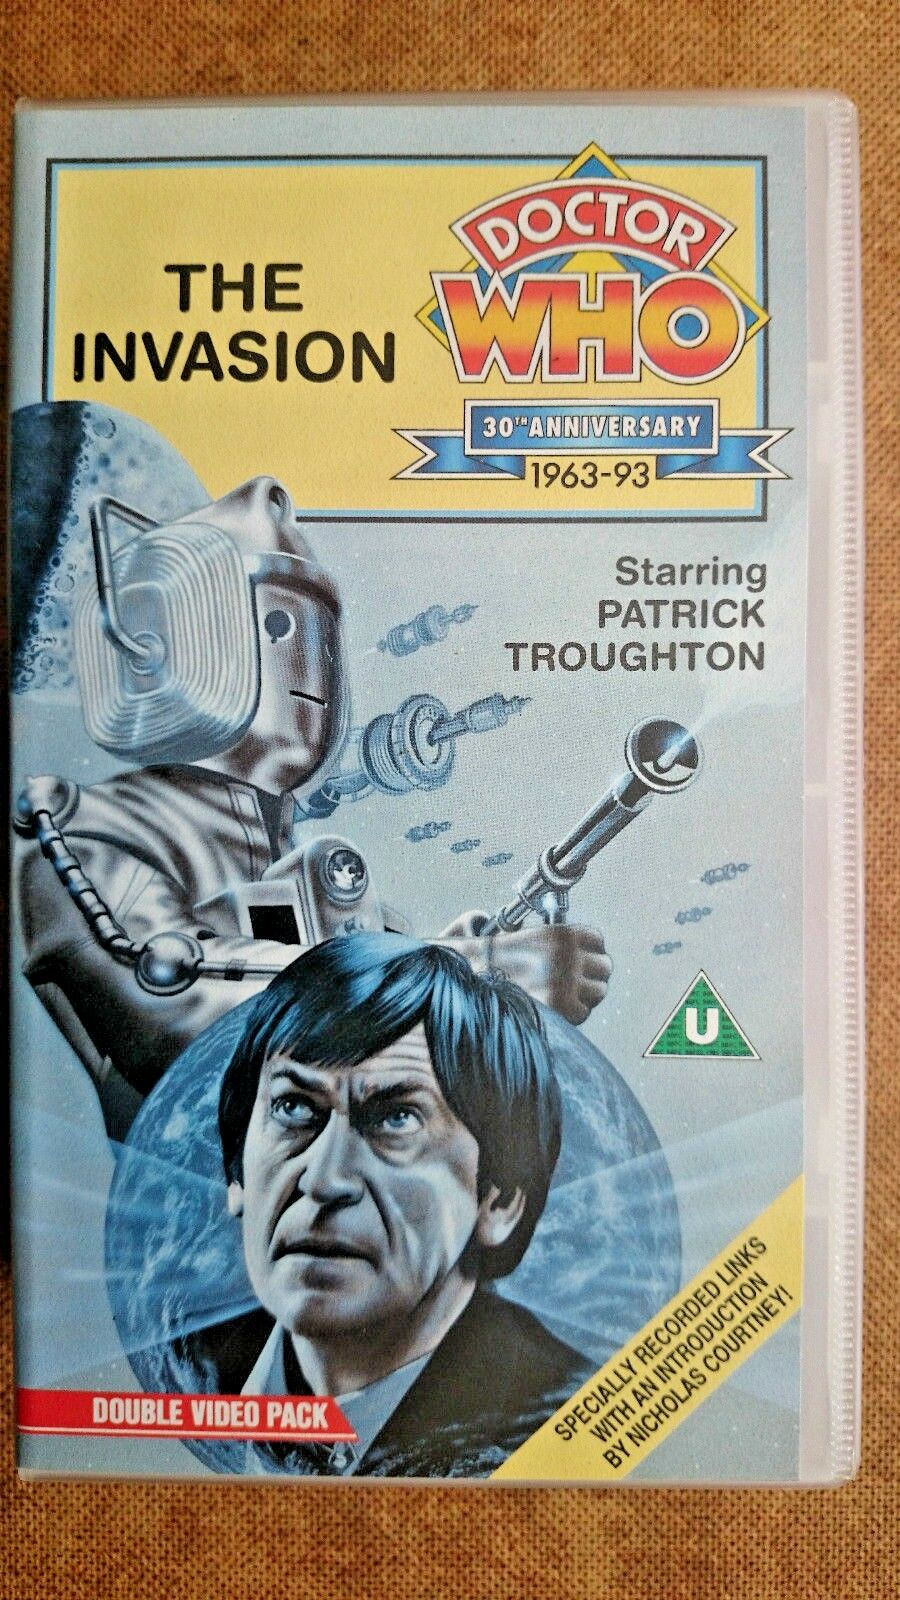 Doctor Who - The Invasion (VHS, 1993, 2-Tape Set) - Patrick Troughton